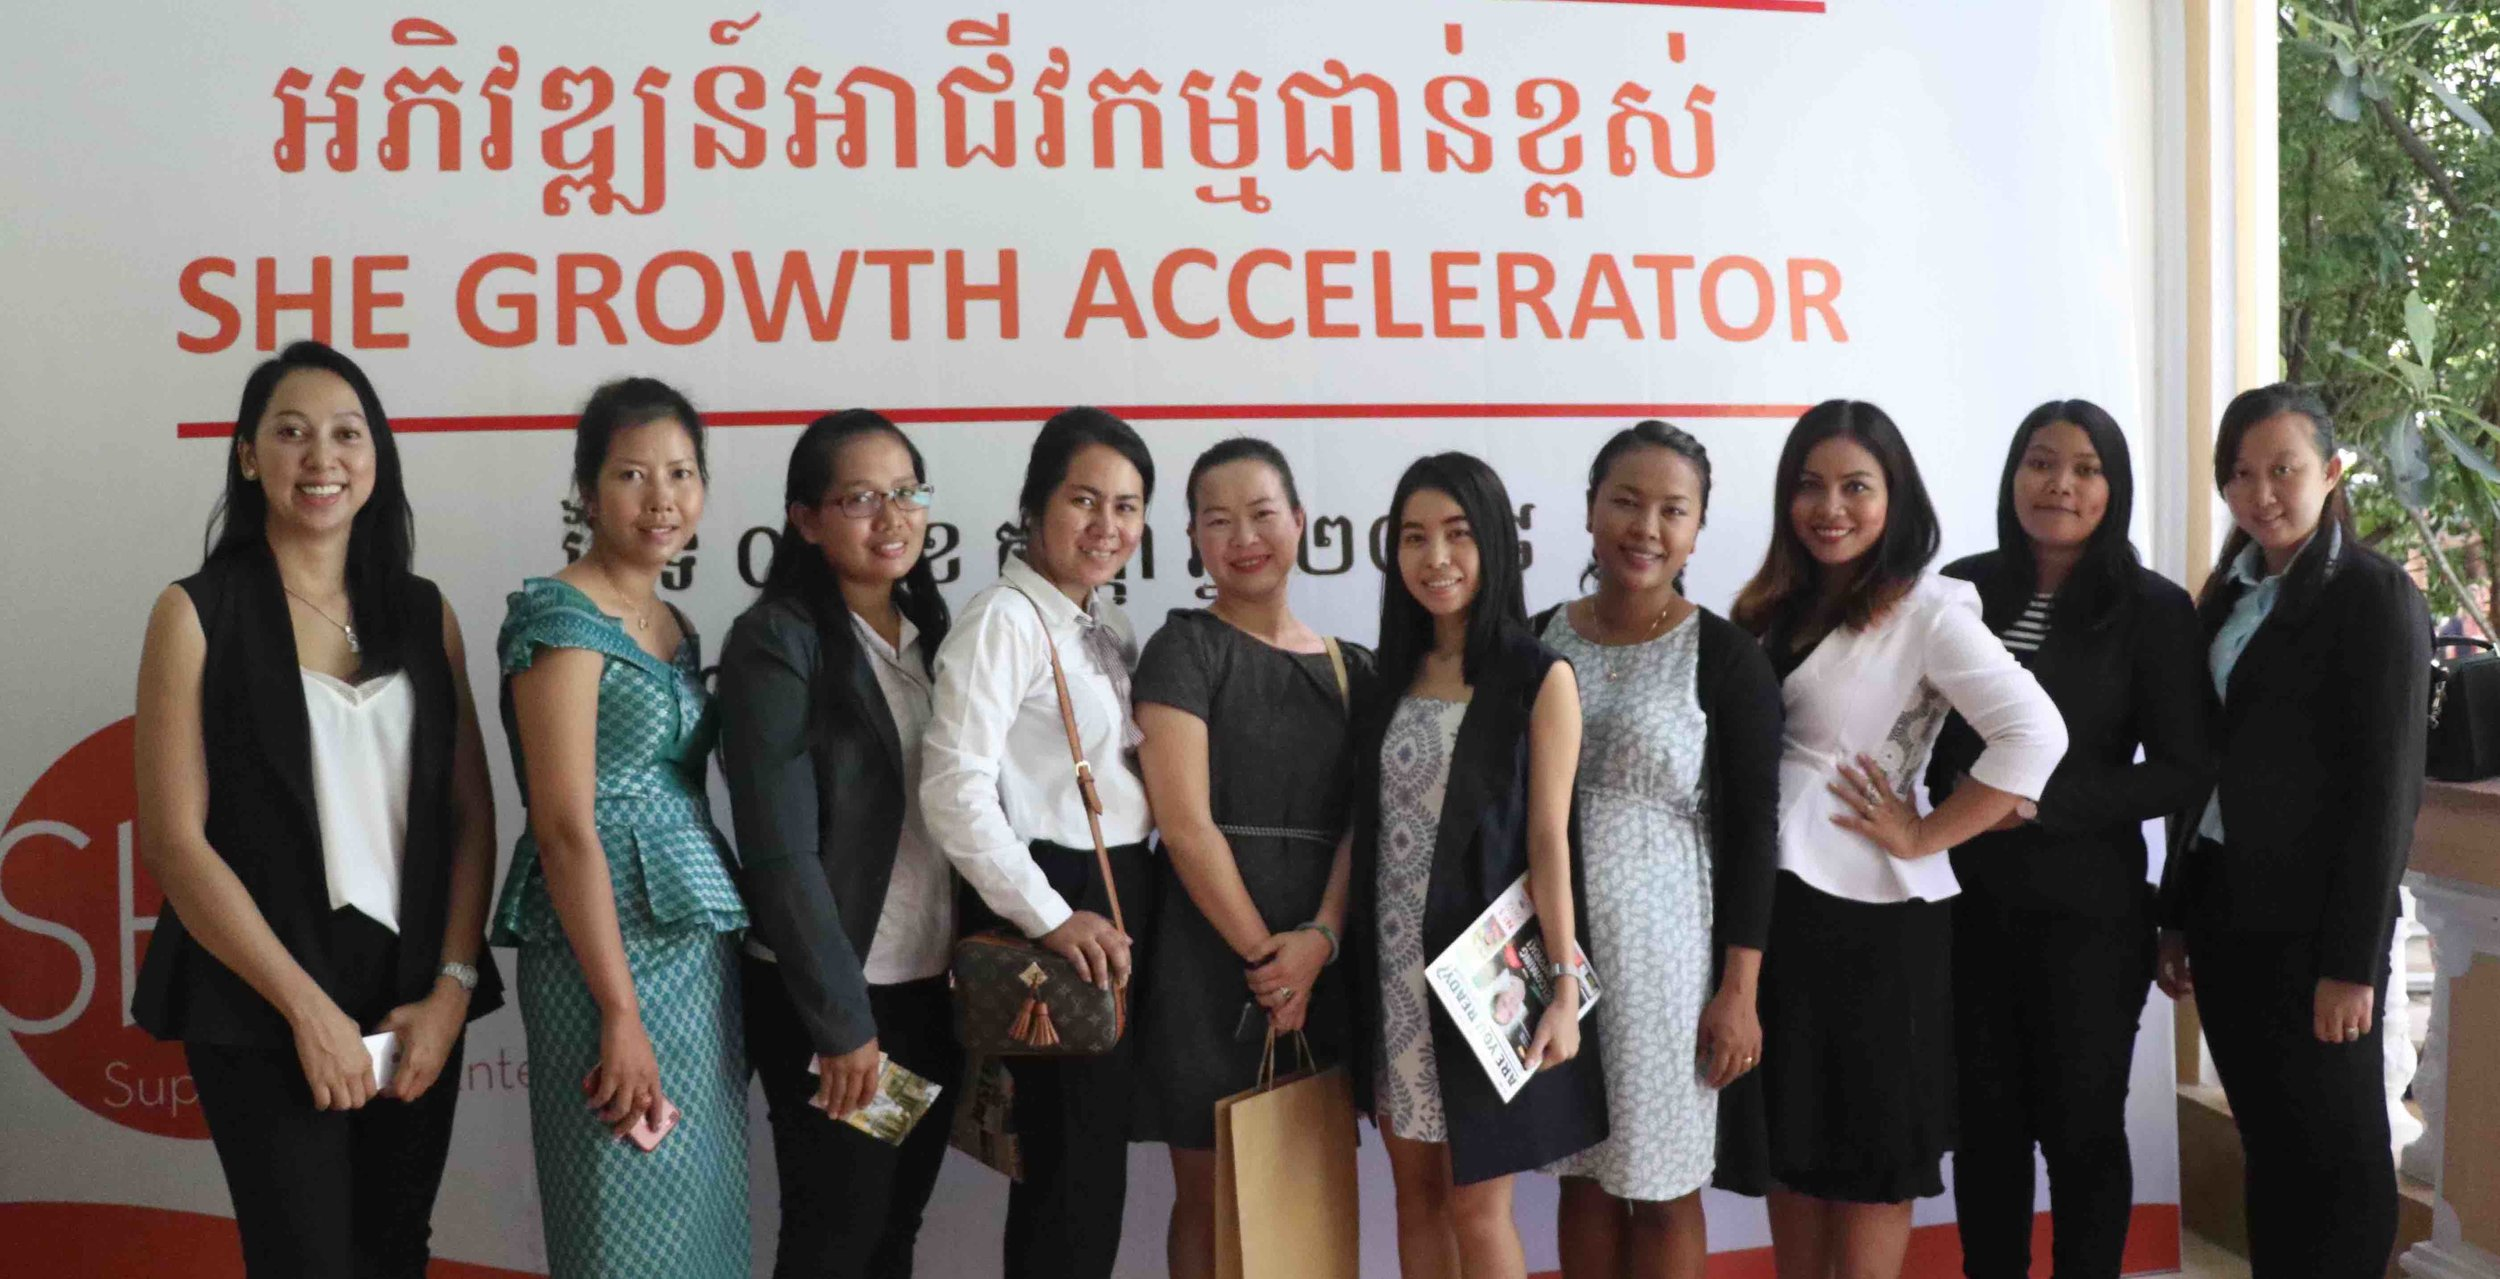 growth accelerator group photo.jpg